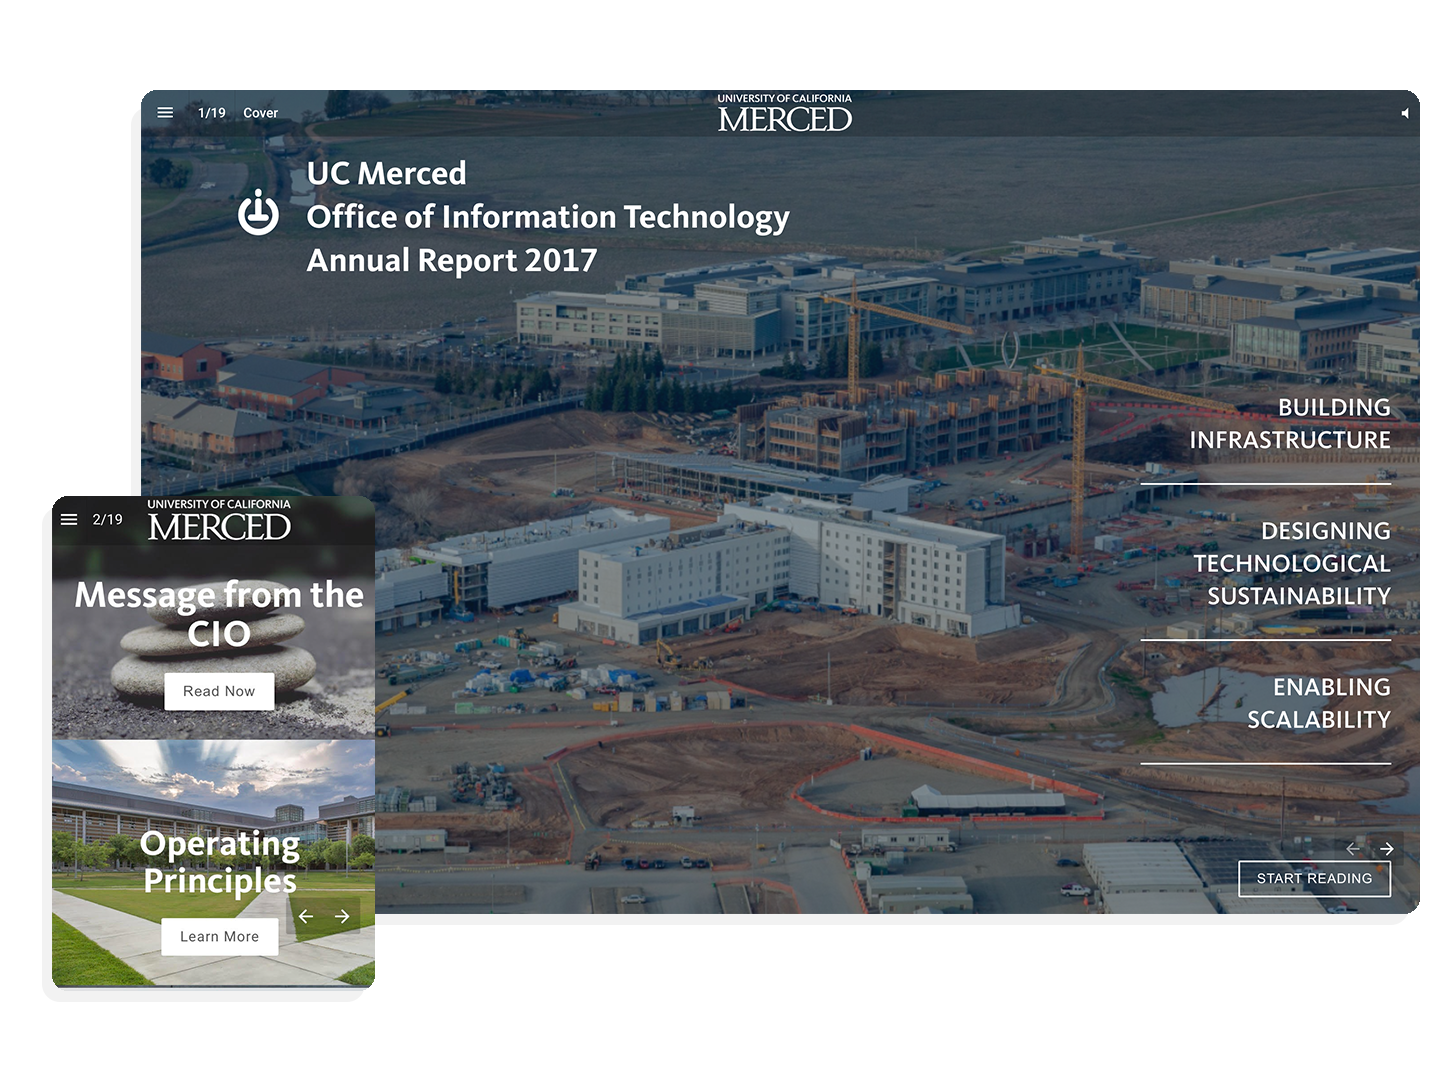 UC Merced engages new readers with immersive digital annual report